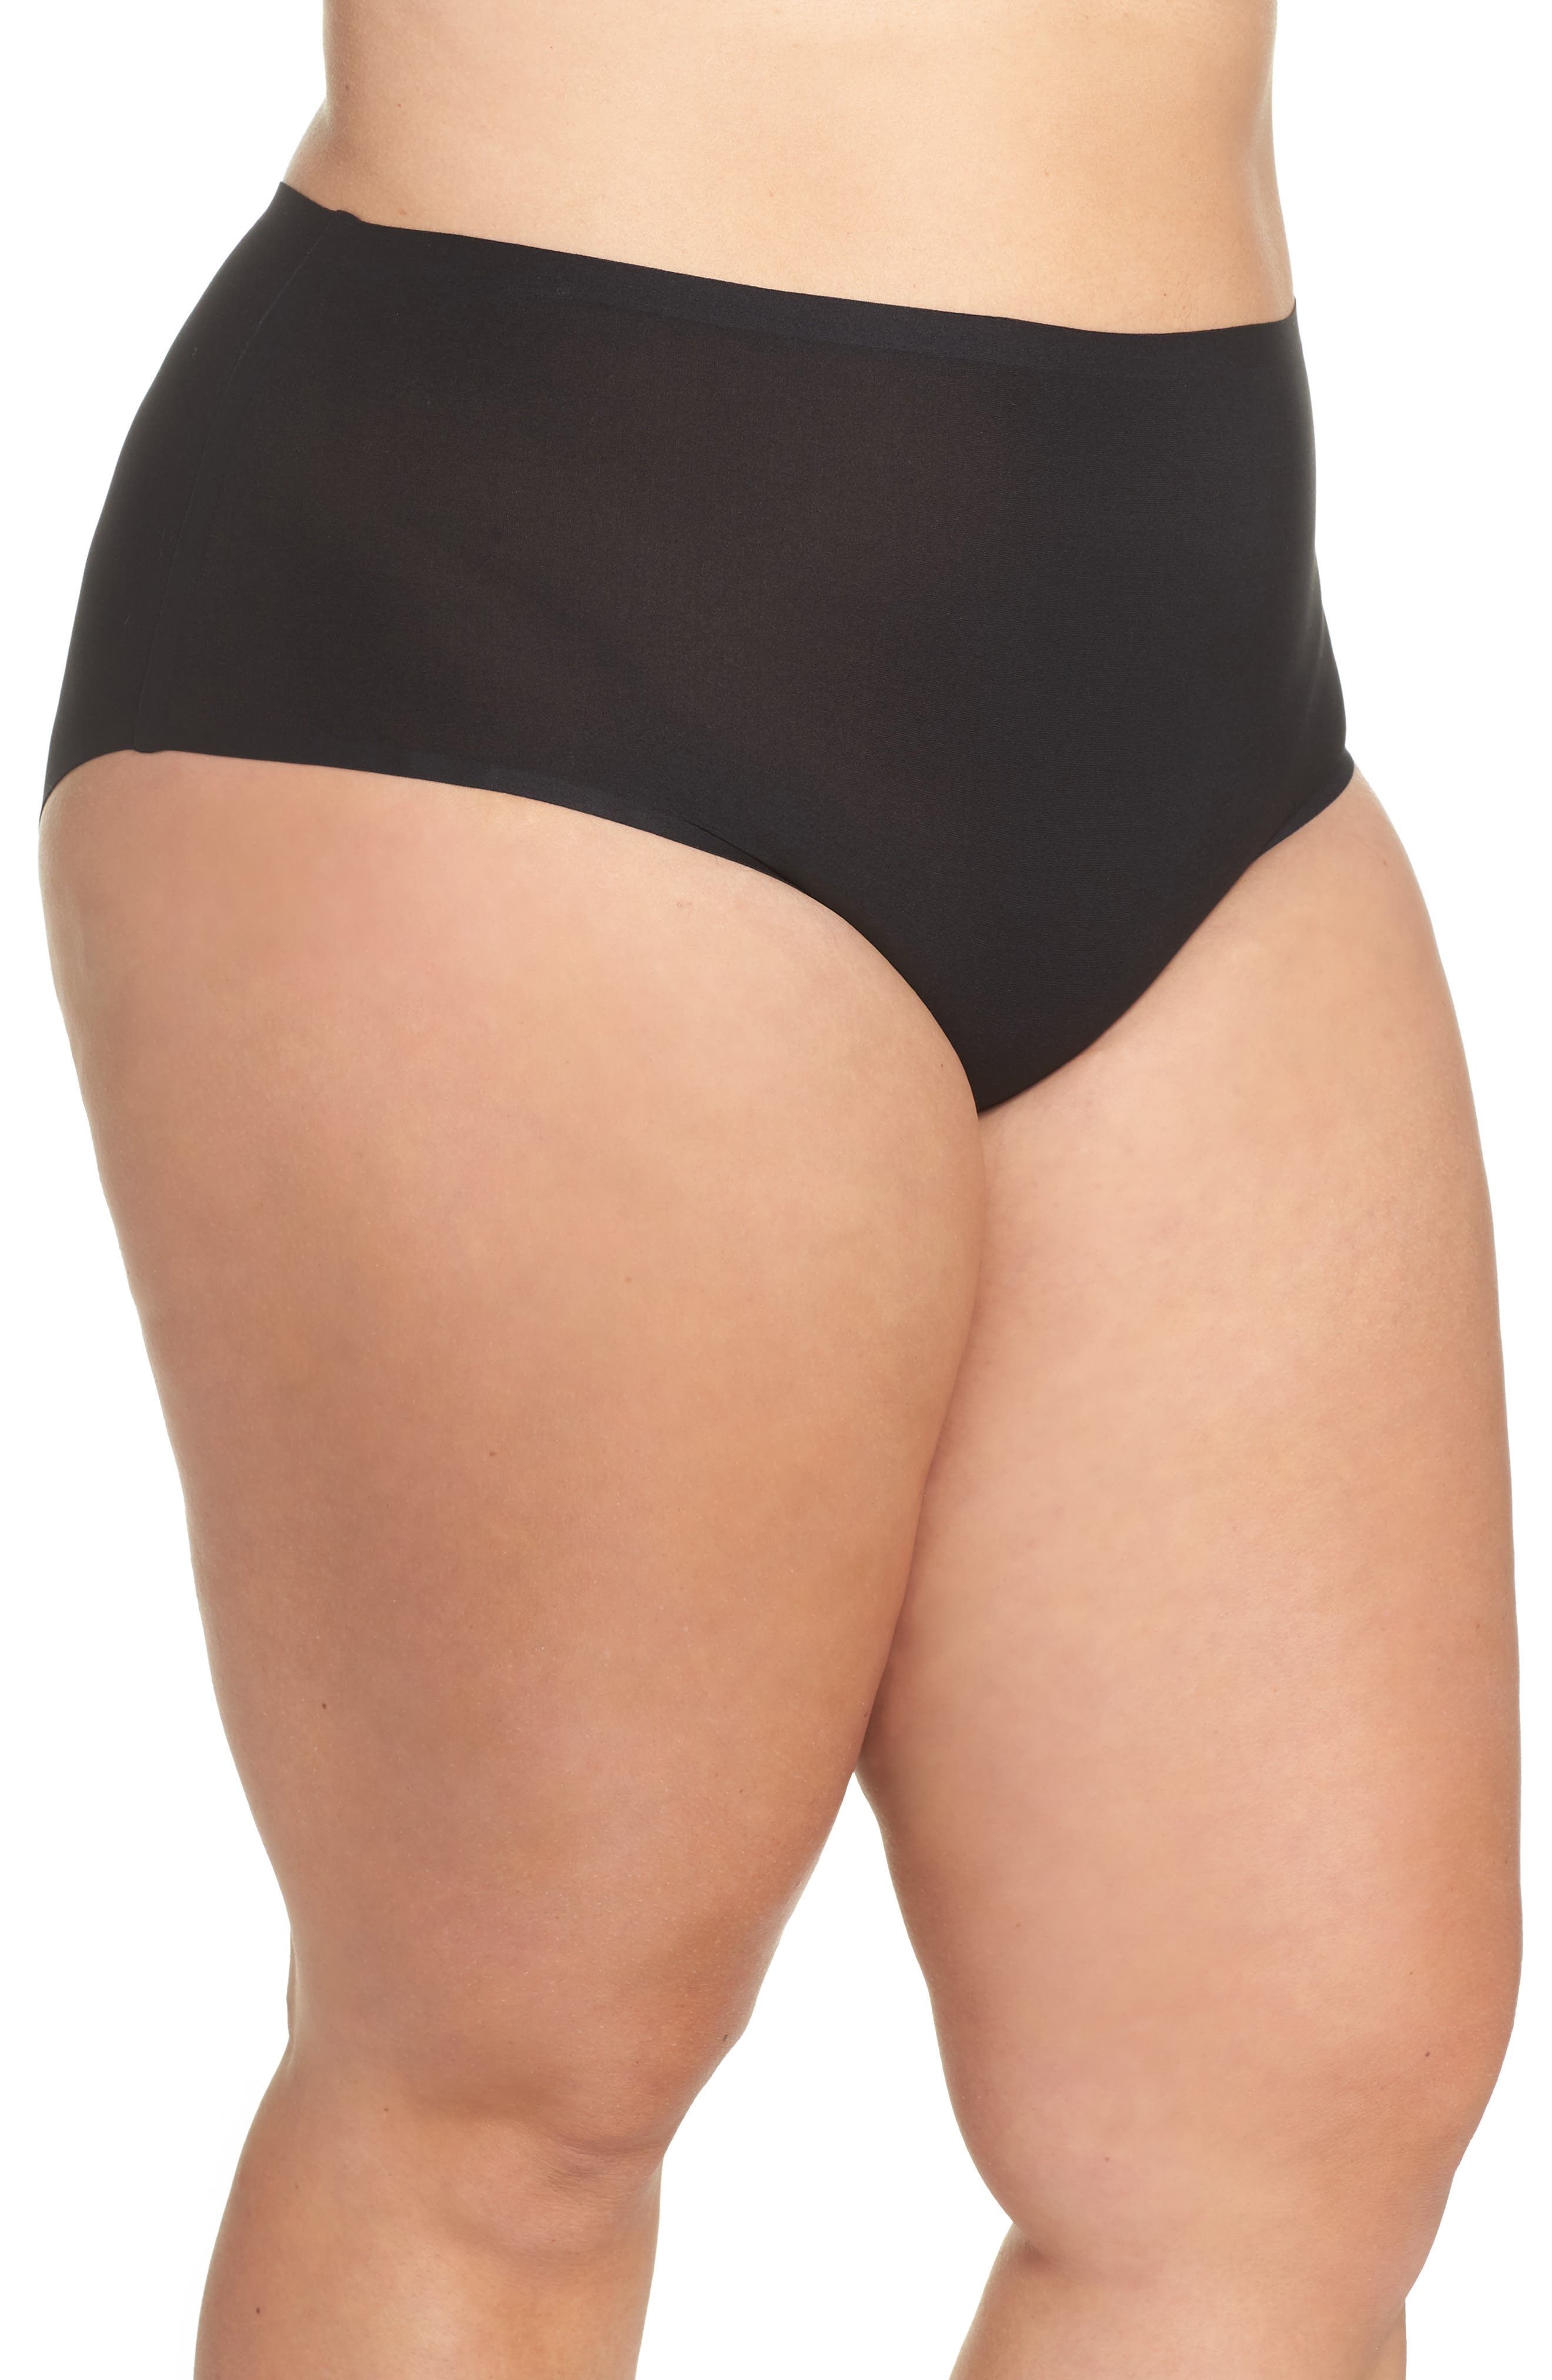 CHANTELLE LINGERIE, Soft Stretch High Waist Seamless Briefs, Alternate thumbnail 3, color, BLACK